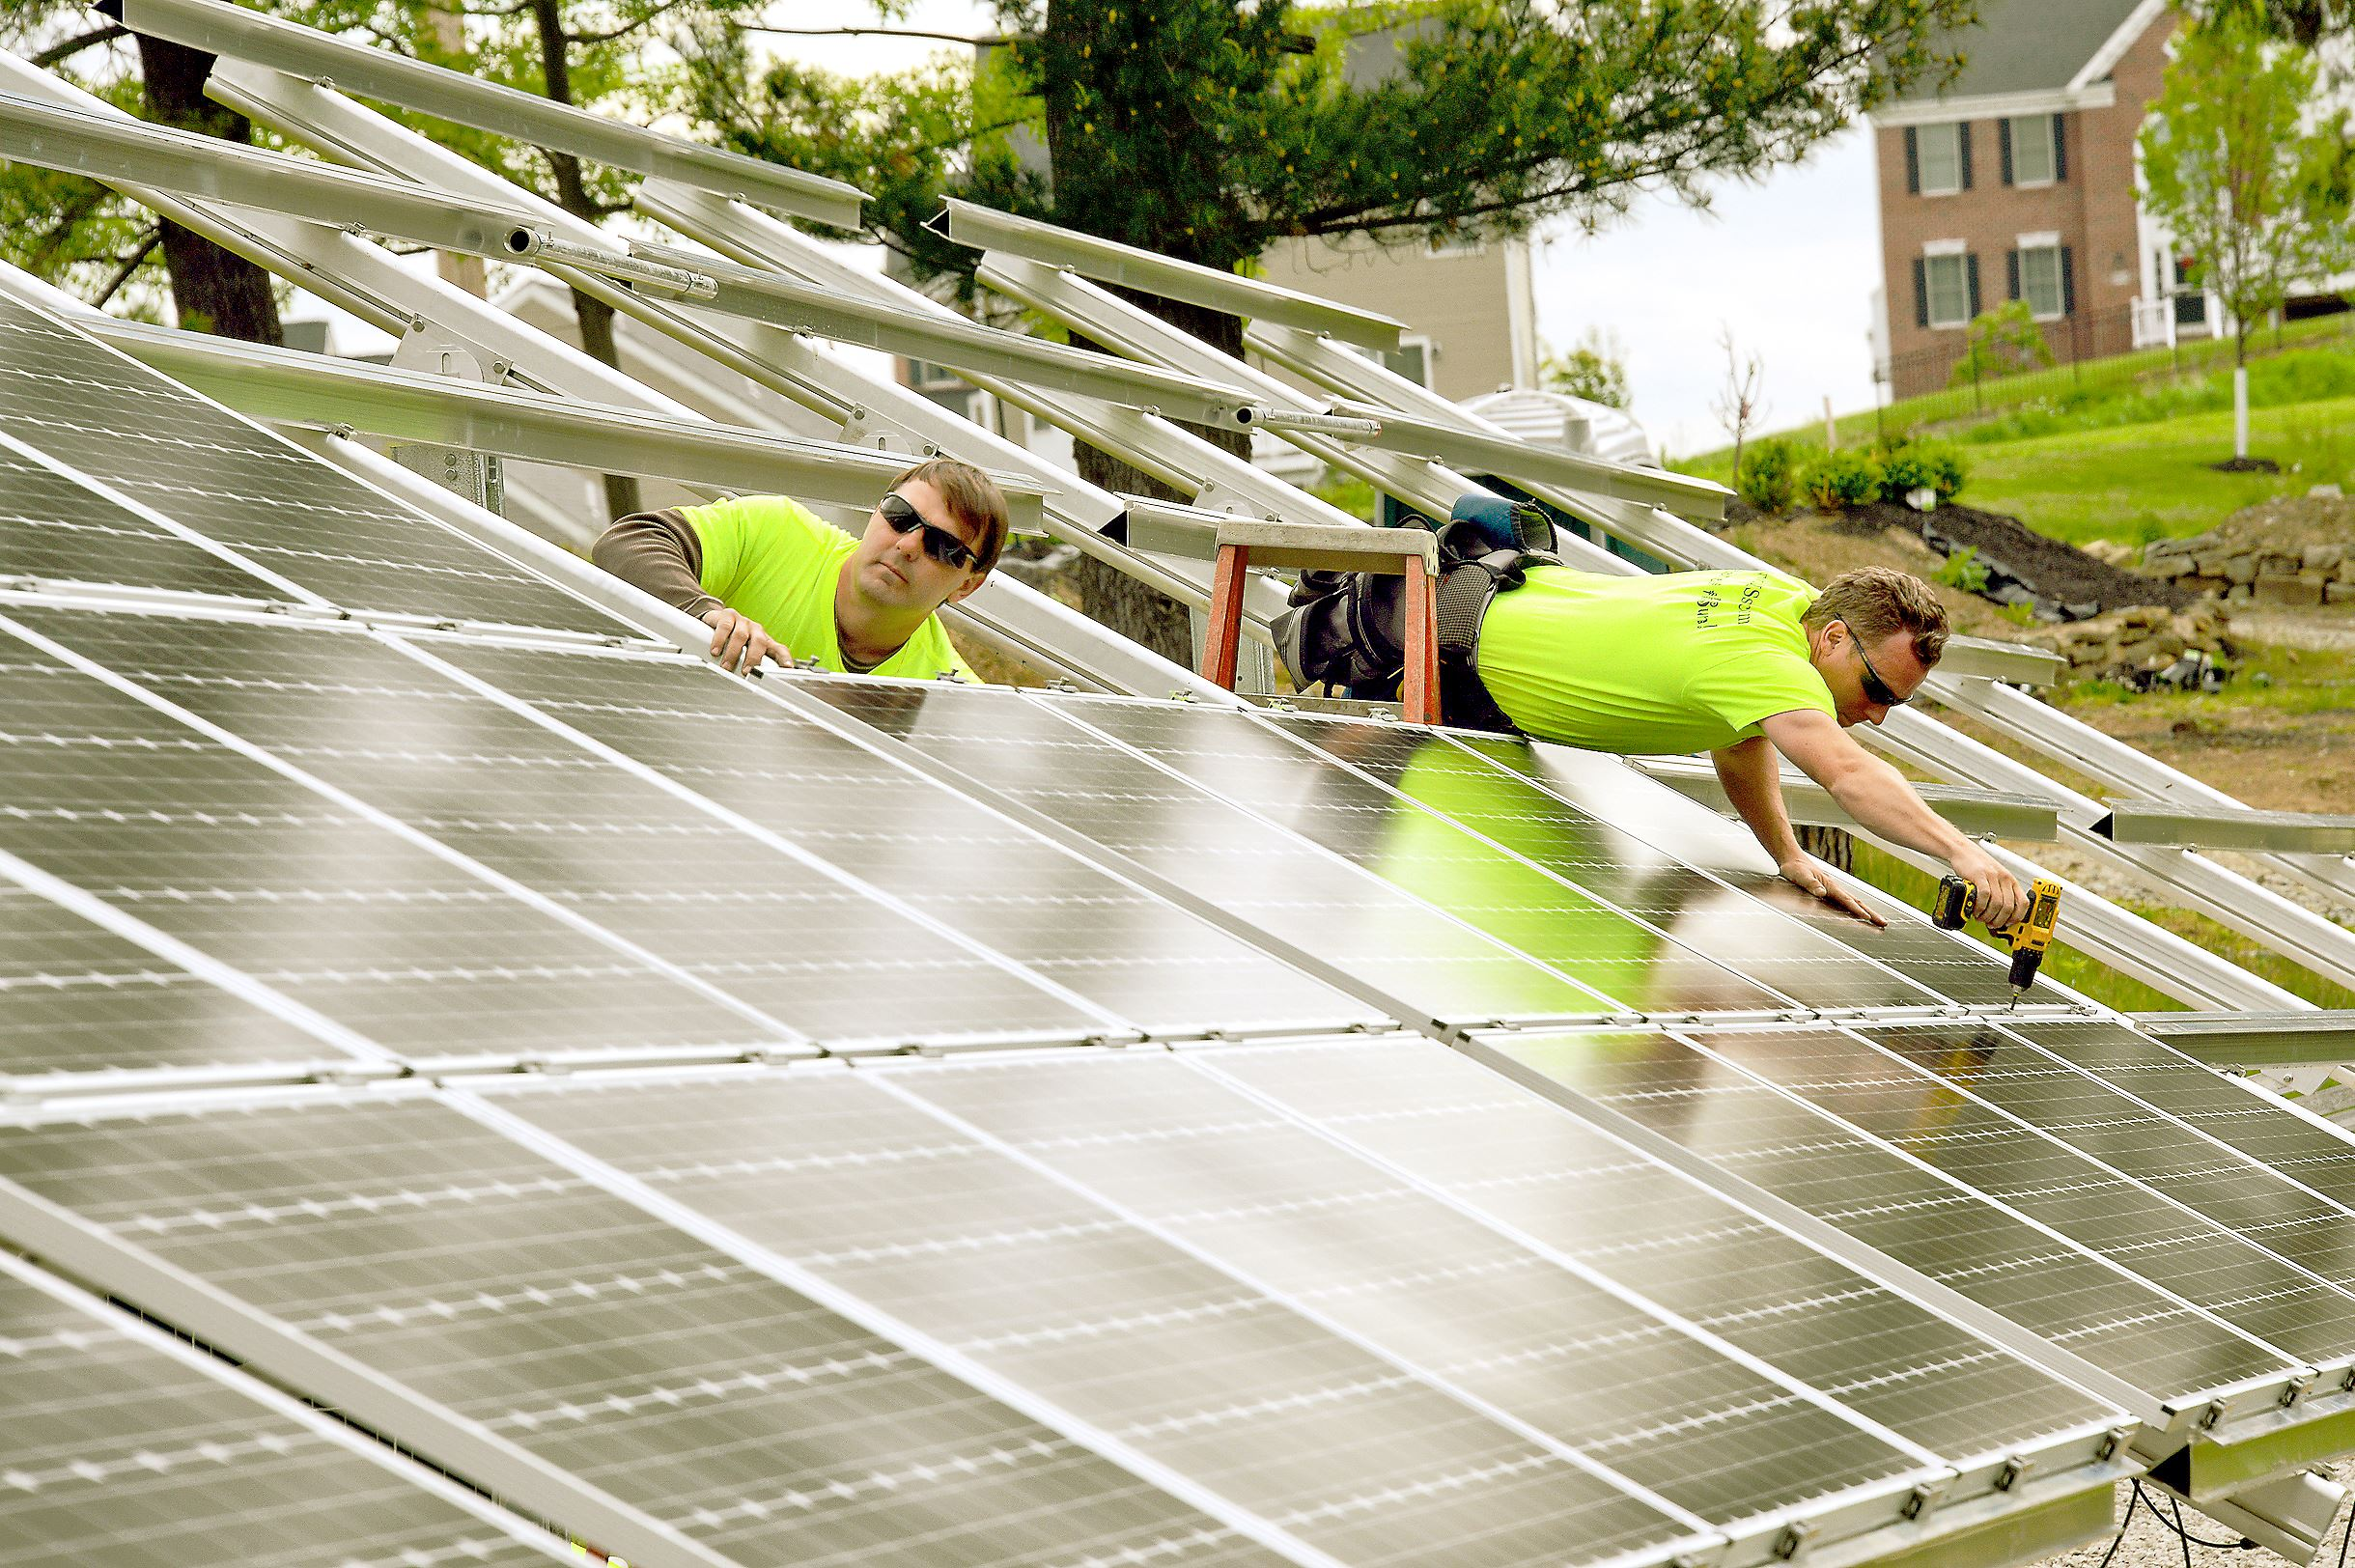 20150521lfSolar02-1 Brian Krenzelak, left, and Scott Rhodehamel of Energy Independent Solutions install solar panels in Moon on May 21. The installation spanned 125 feet in length and can generate more than 30,000 kilowatt-hours each year.